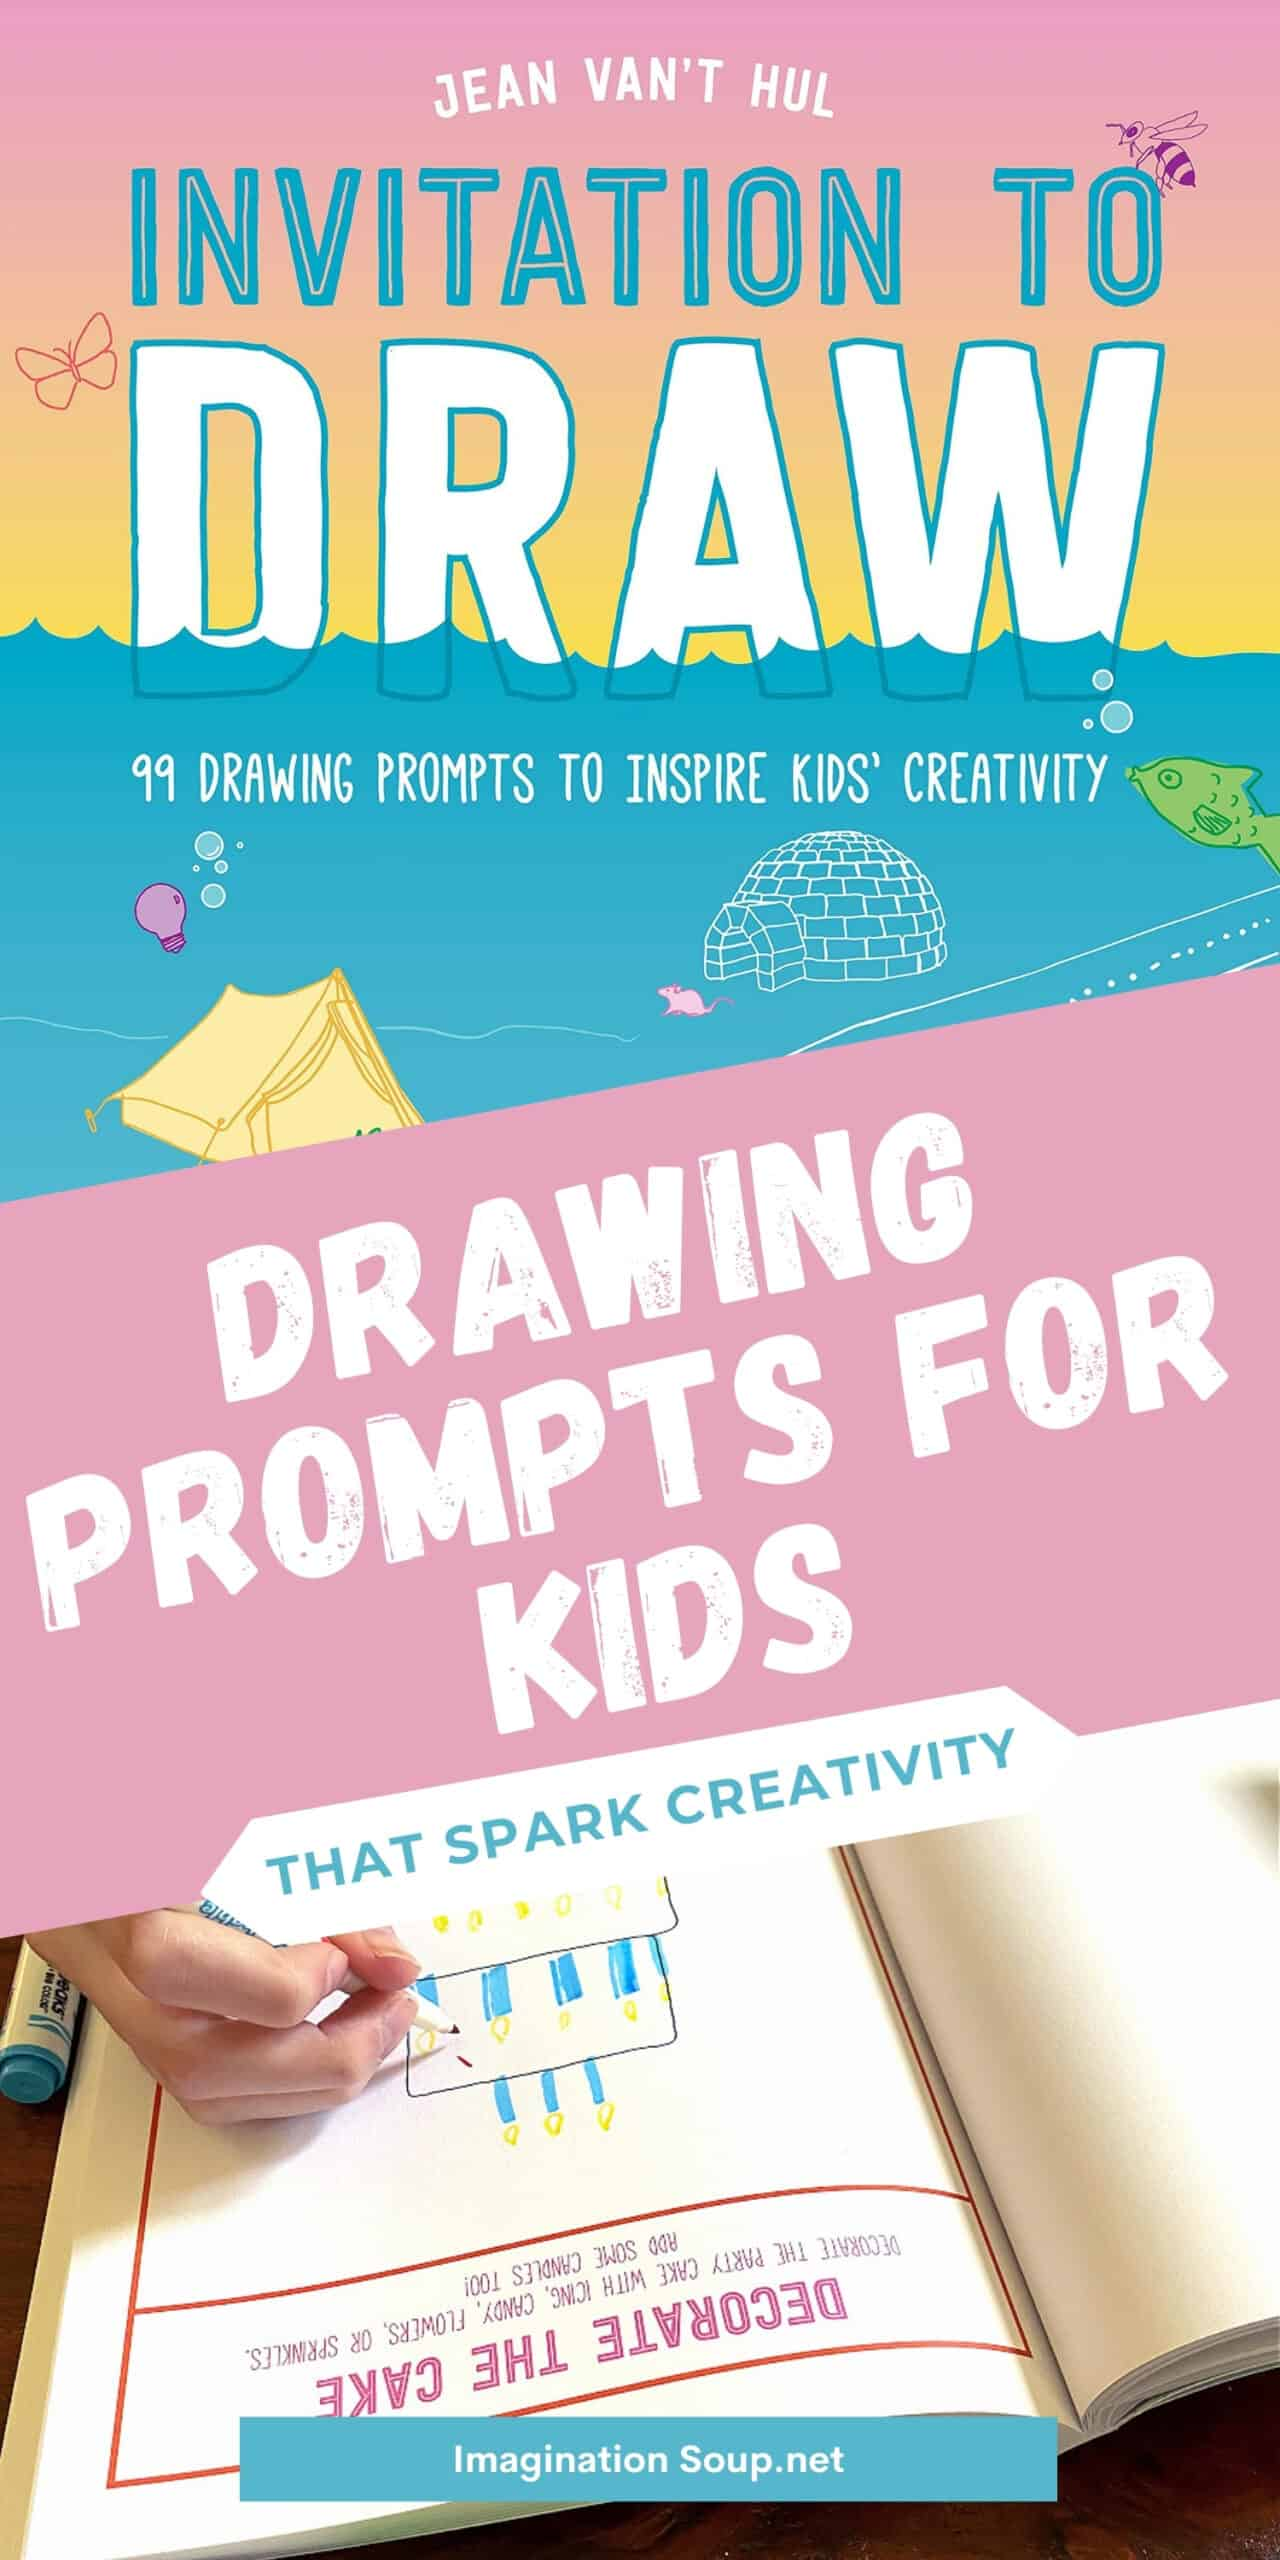 Invitation to draw, children's drawing tips book